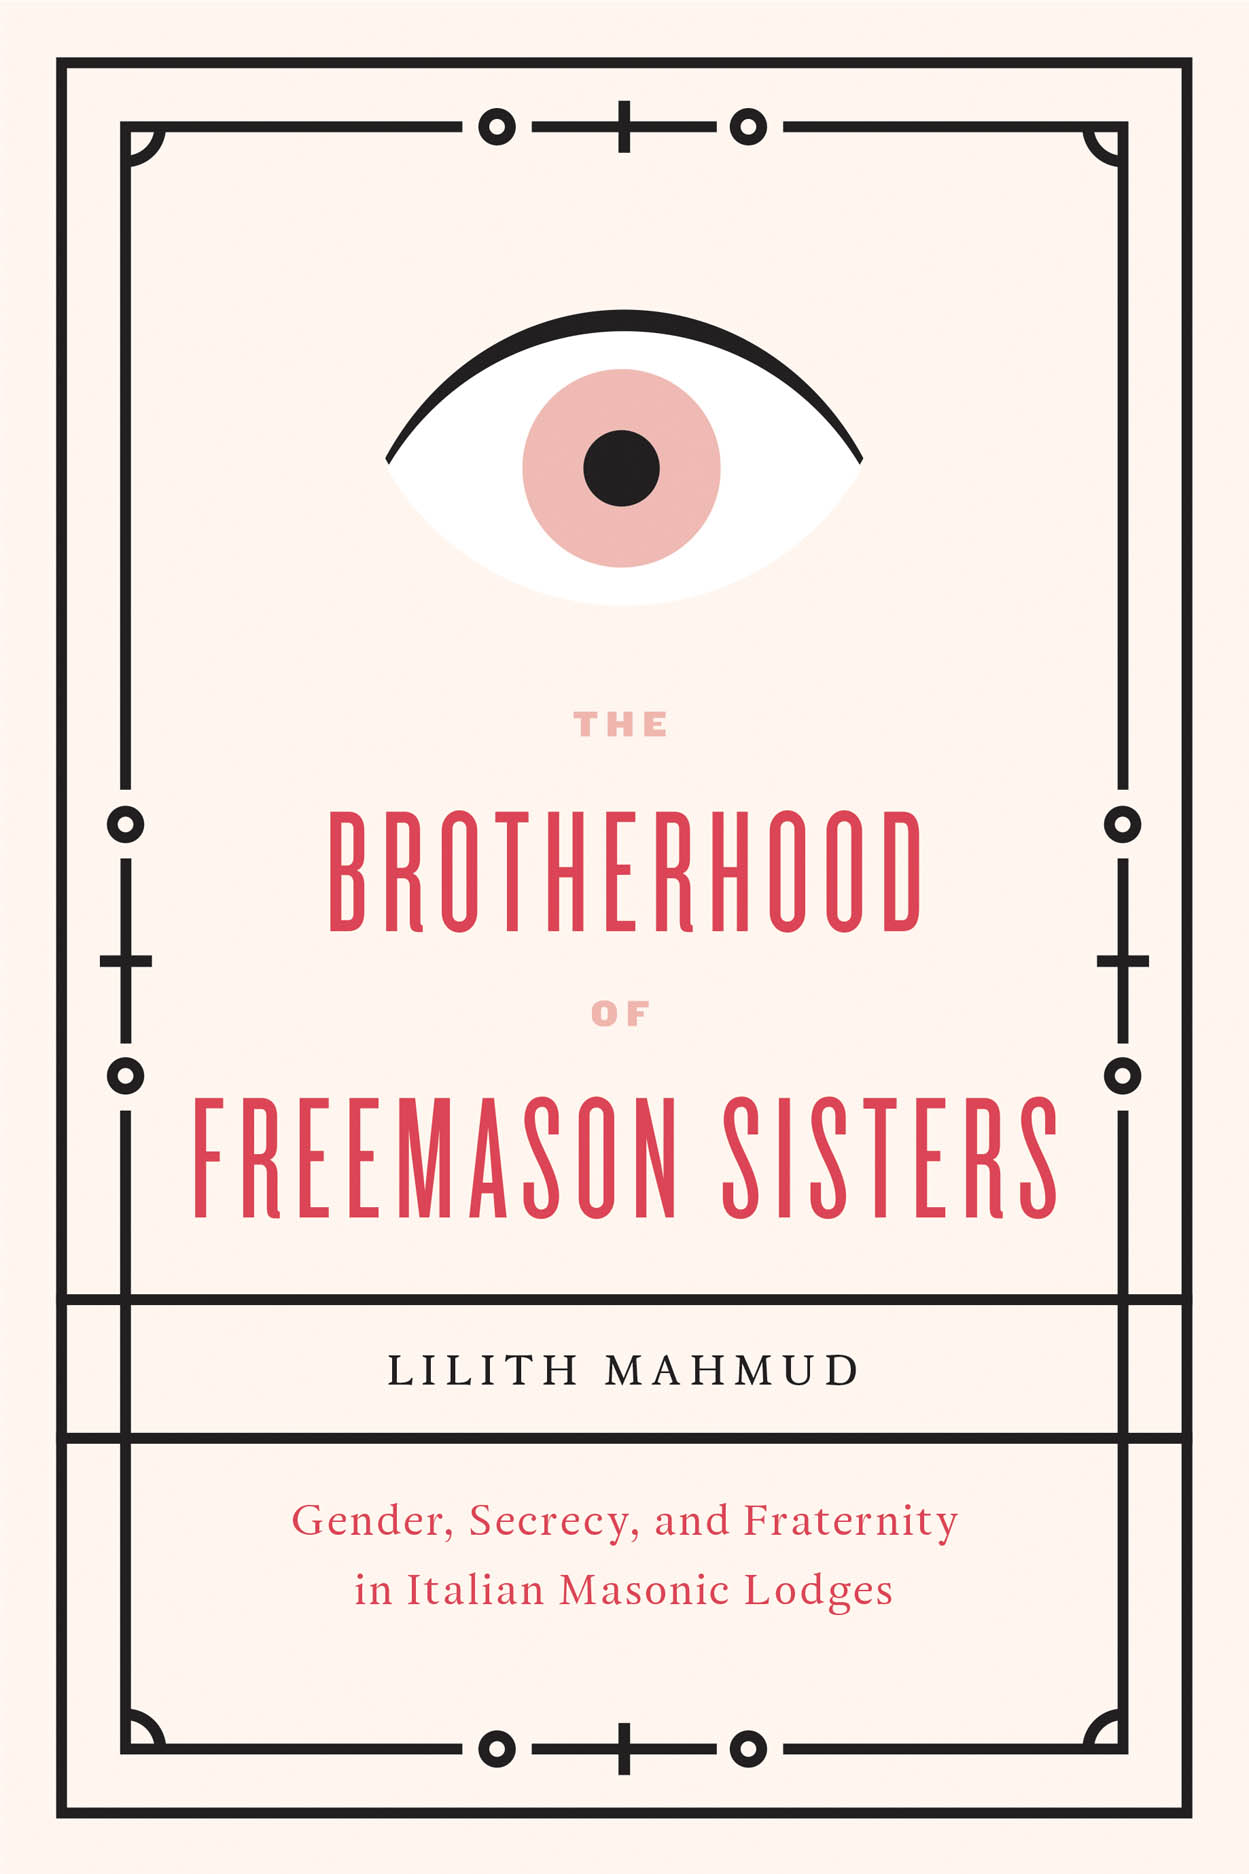 The Brotherhood of Freemason Sisters: Gender, Secrecy, and Fraternity in Italian Masonic Lodges